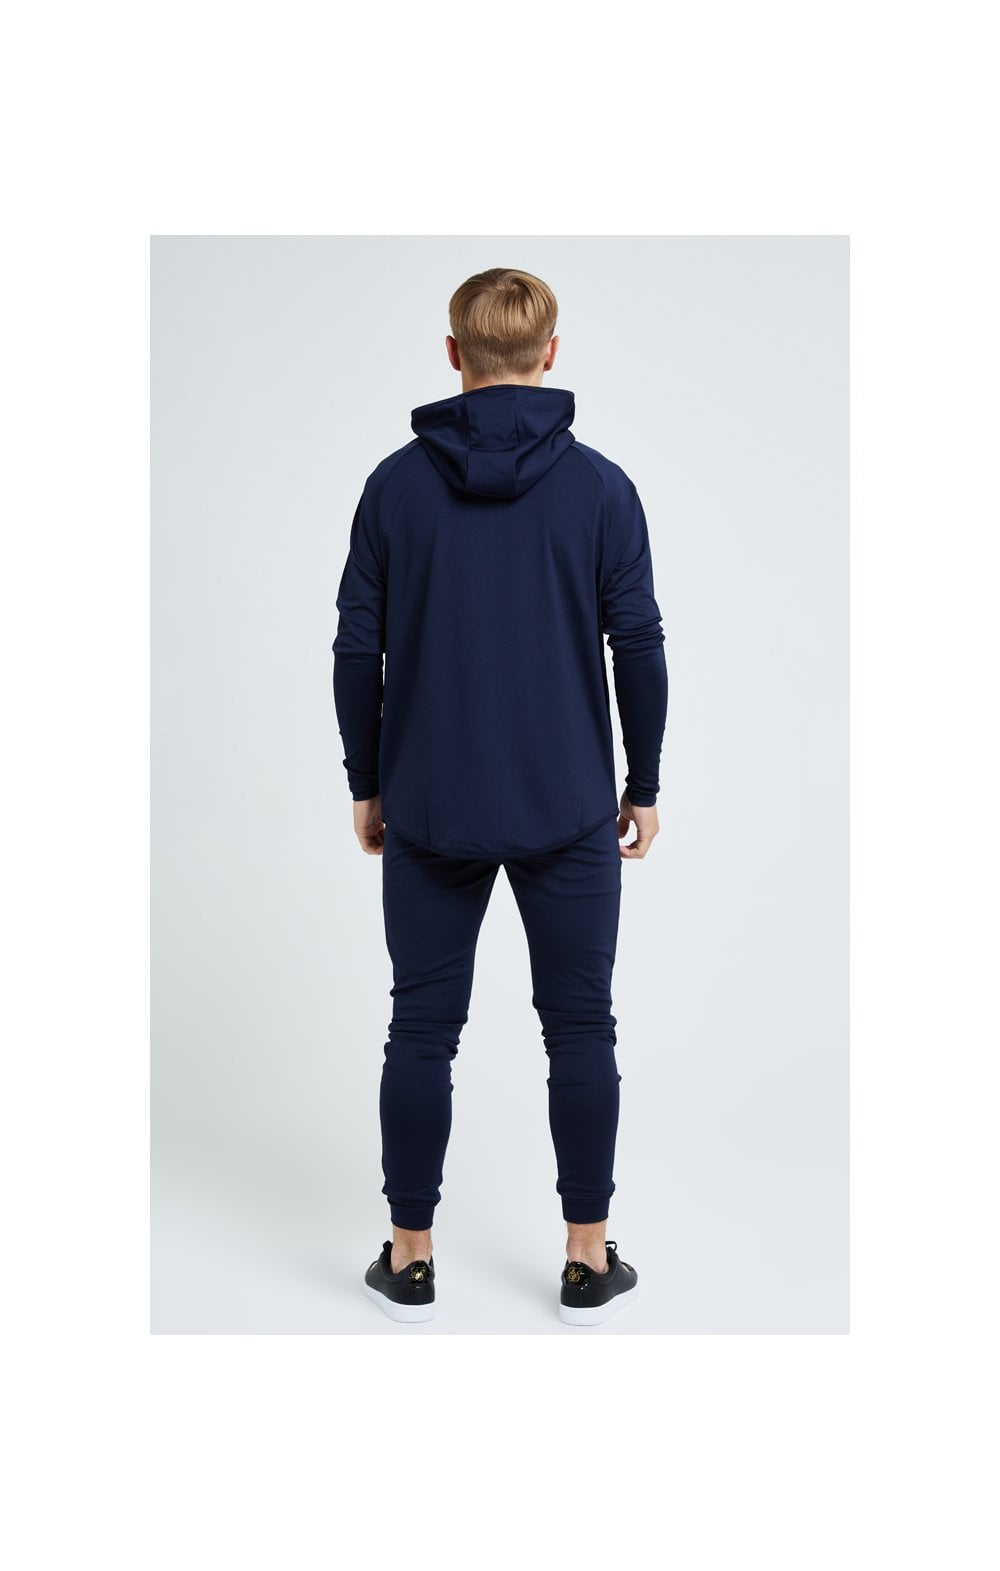 Illusive London Core Fitted Joggers - Navy (6)